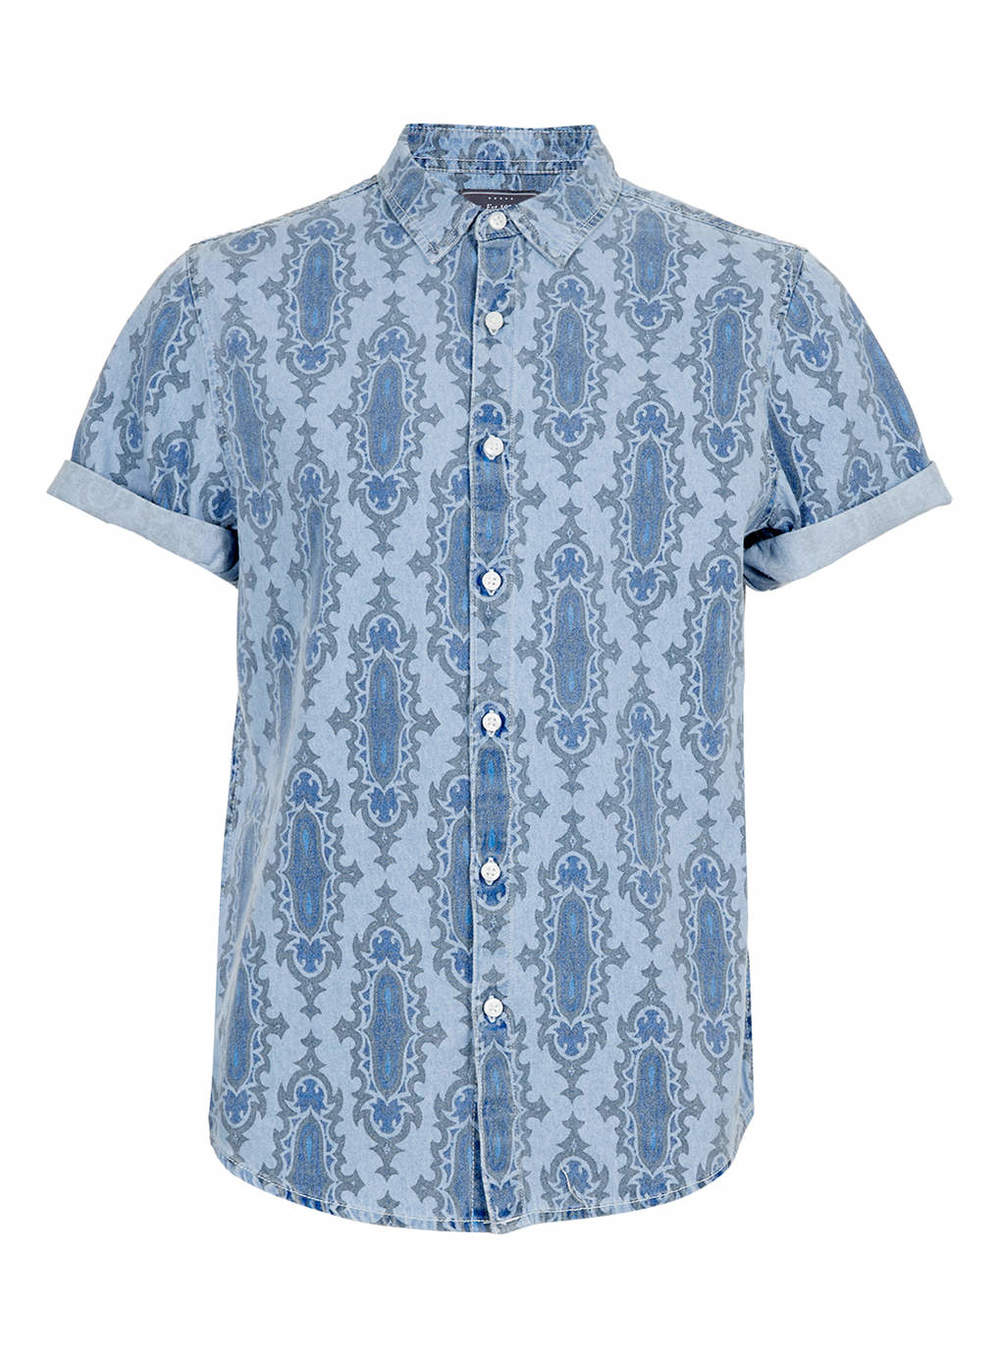 Blue Baroque Print Short Sleeve Shirt, $55